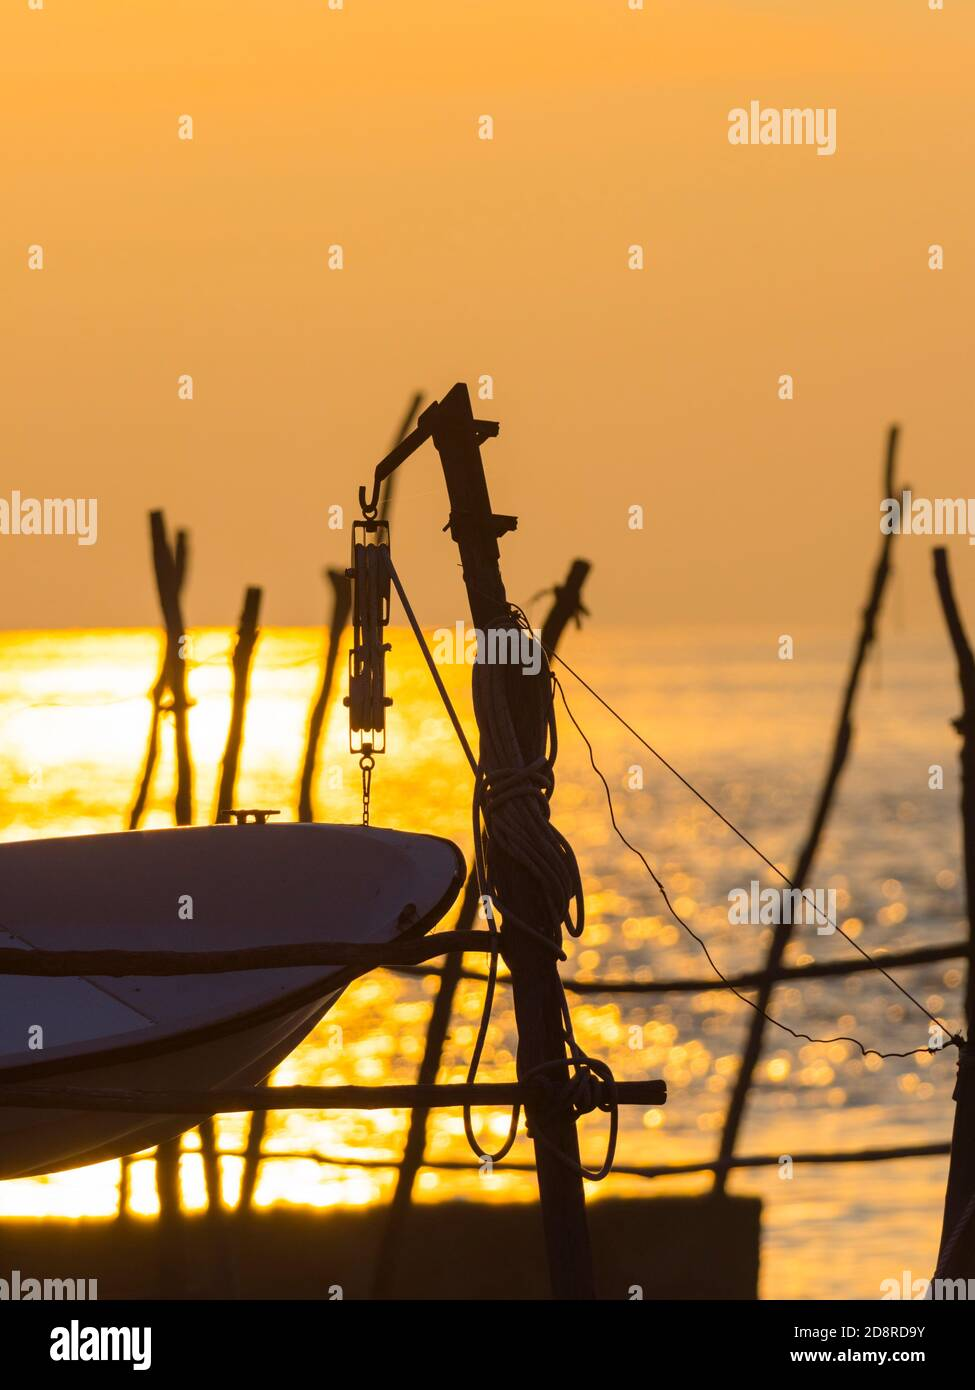 Intensive vivid sunset setting sun Yellow featuring hanging silhouette boat bow wooden post Basanija near Savudrija, Istria Coast in Croatia Europe Stock Photo